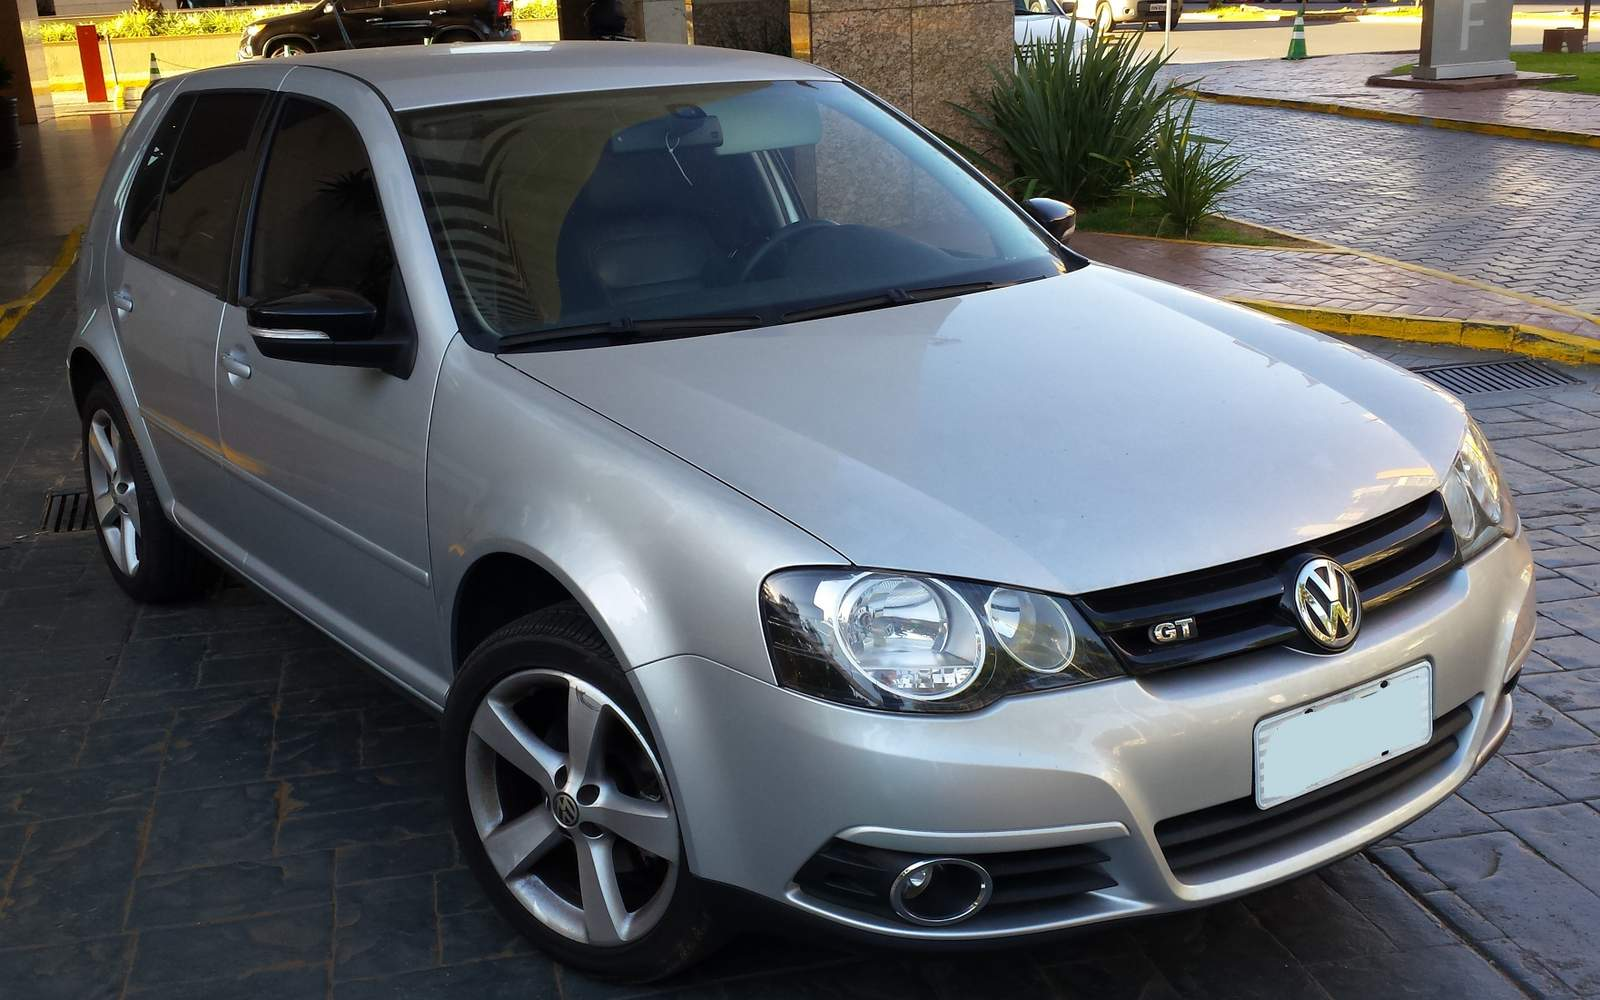 vw golf gt 2 0 tiptronic 2013 meu nome prazer ao dirigir car blog br. Black Bedroom Furniture Sets. Home Design Ideas